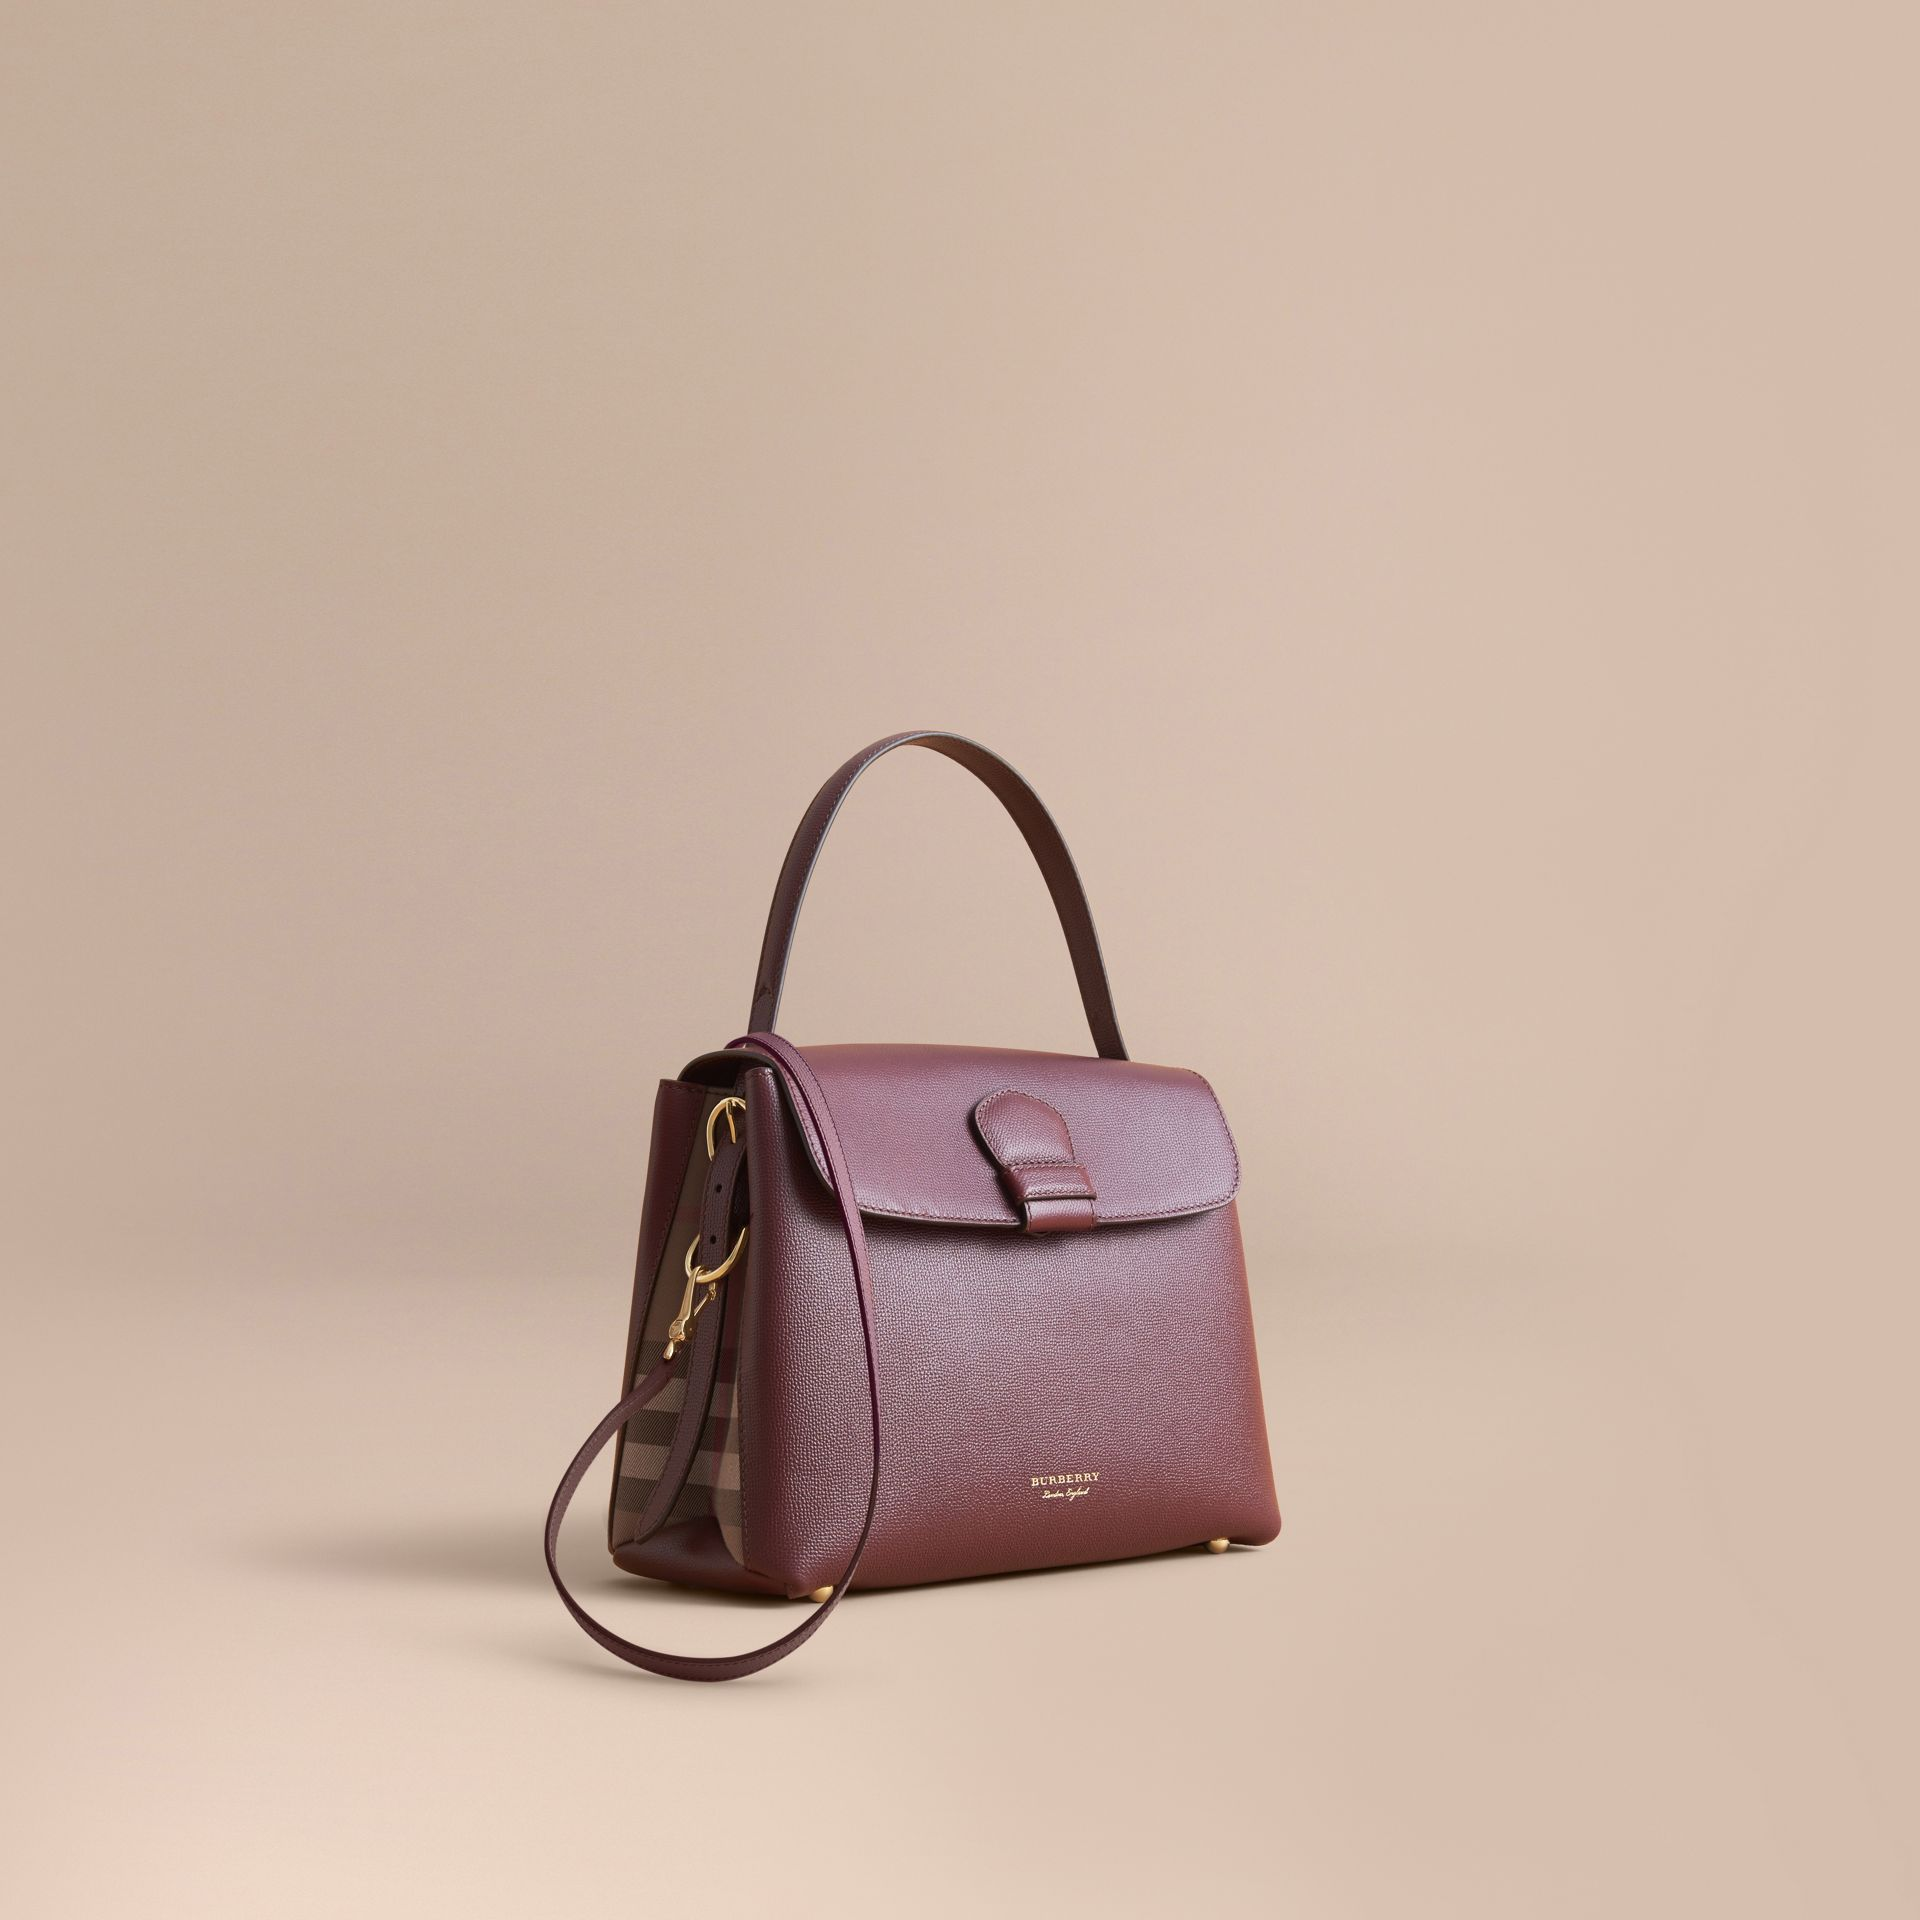 Medium Grainy Leather and House Check Tote Bag in Mahogany Red - Women | Burberry Hong Kong - gallery image 1